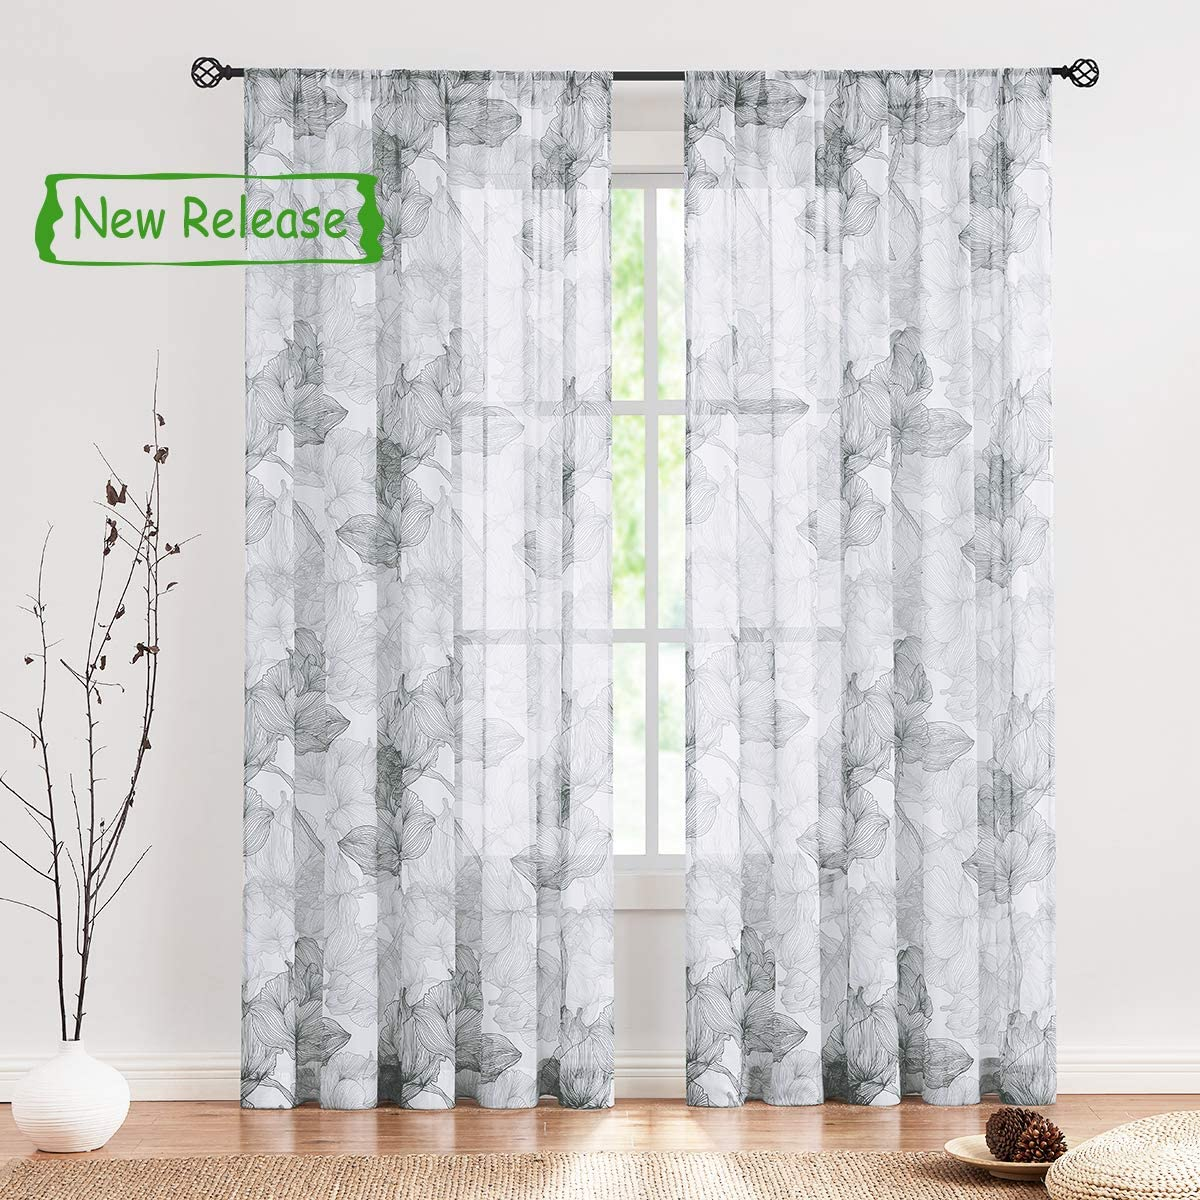 Treatmentex Floral Sheer Curtain Drapes for Living-Room Grey on White Floral Botanical Bedroom Semi Sheers Chiffon 95 inches Lotus Leaves Print Curtain Panels for Studio Yard Patio 2pcs